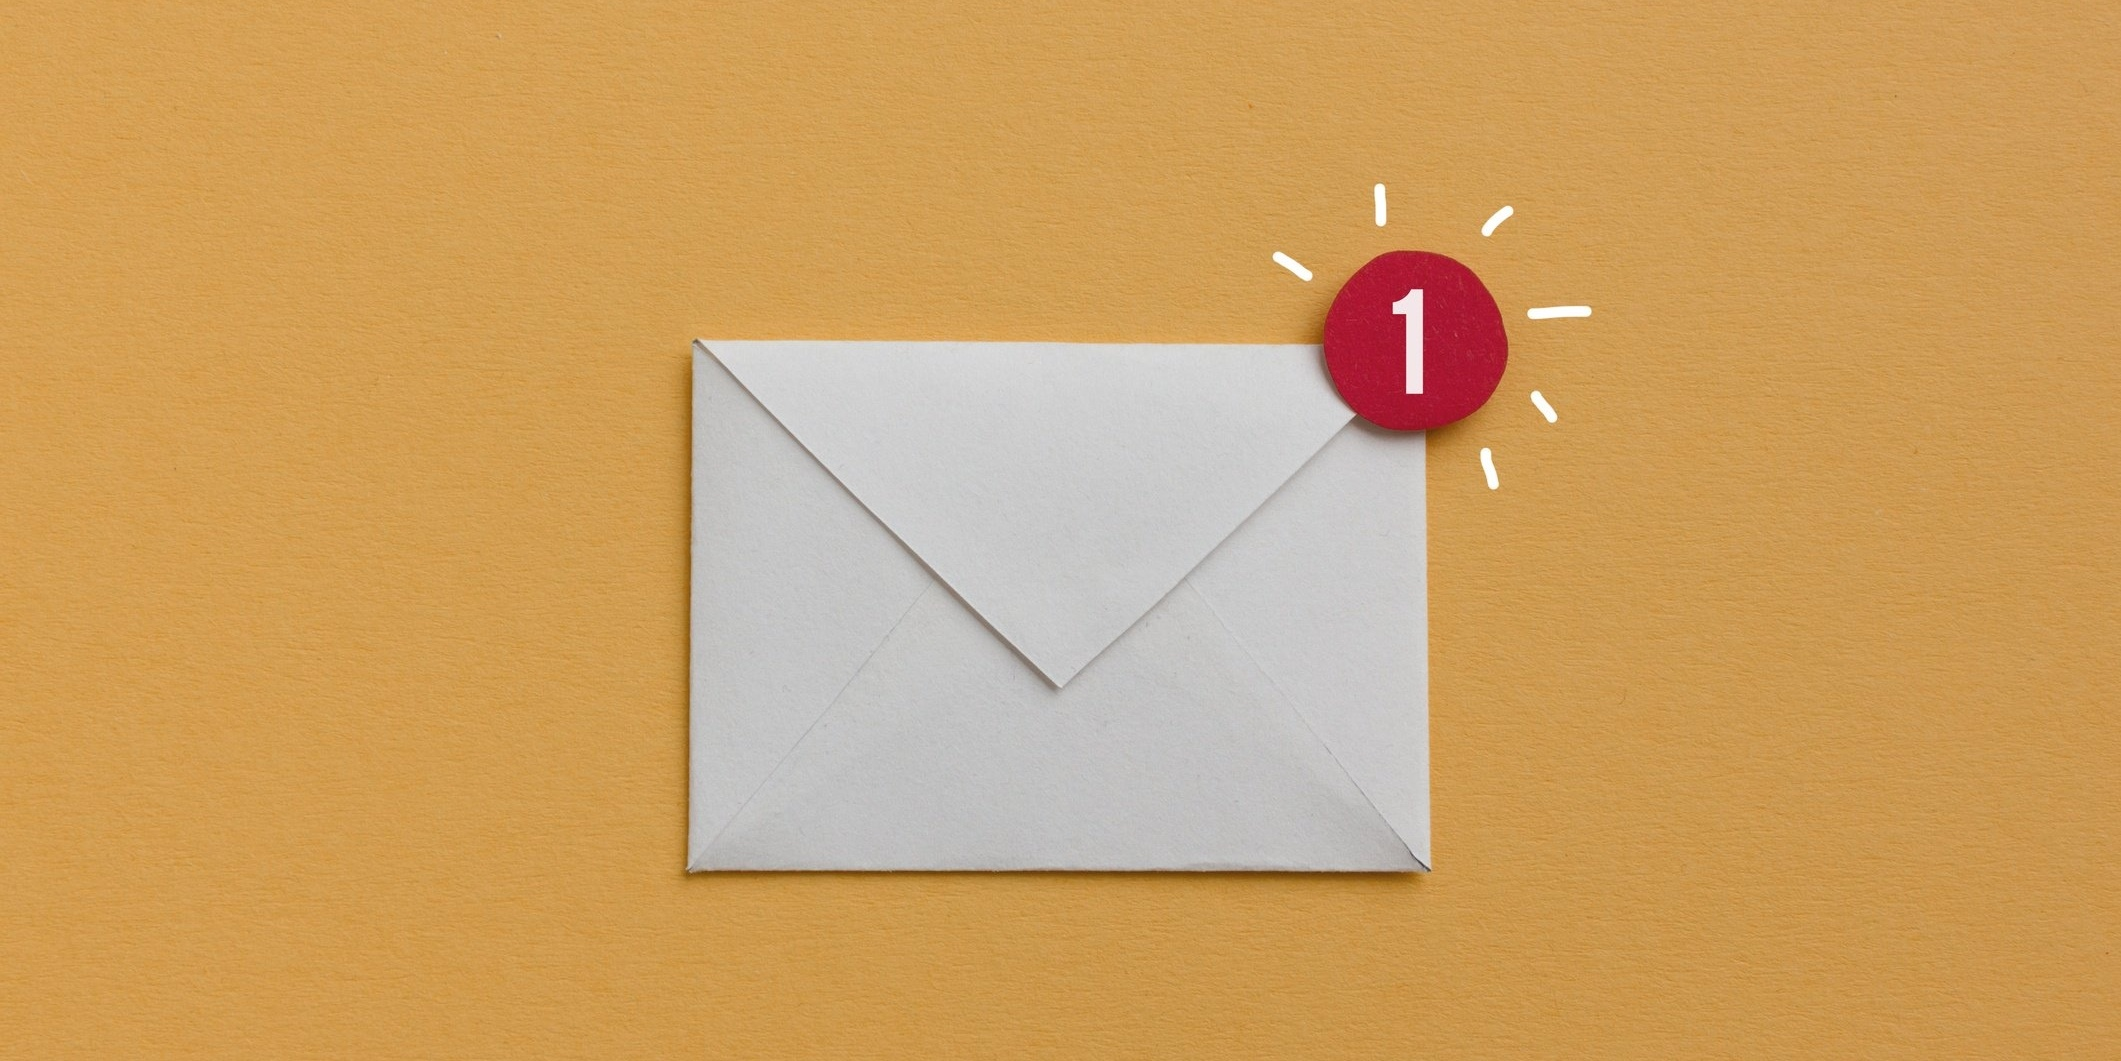 email statistics to guide sales email strategy